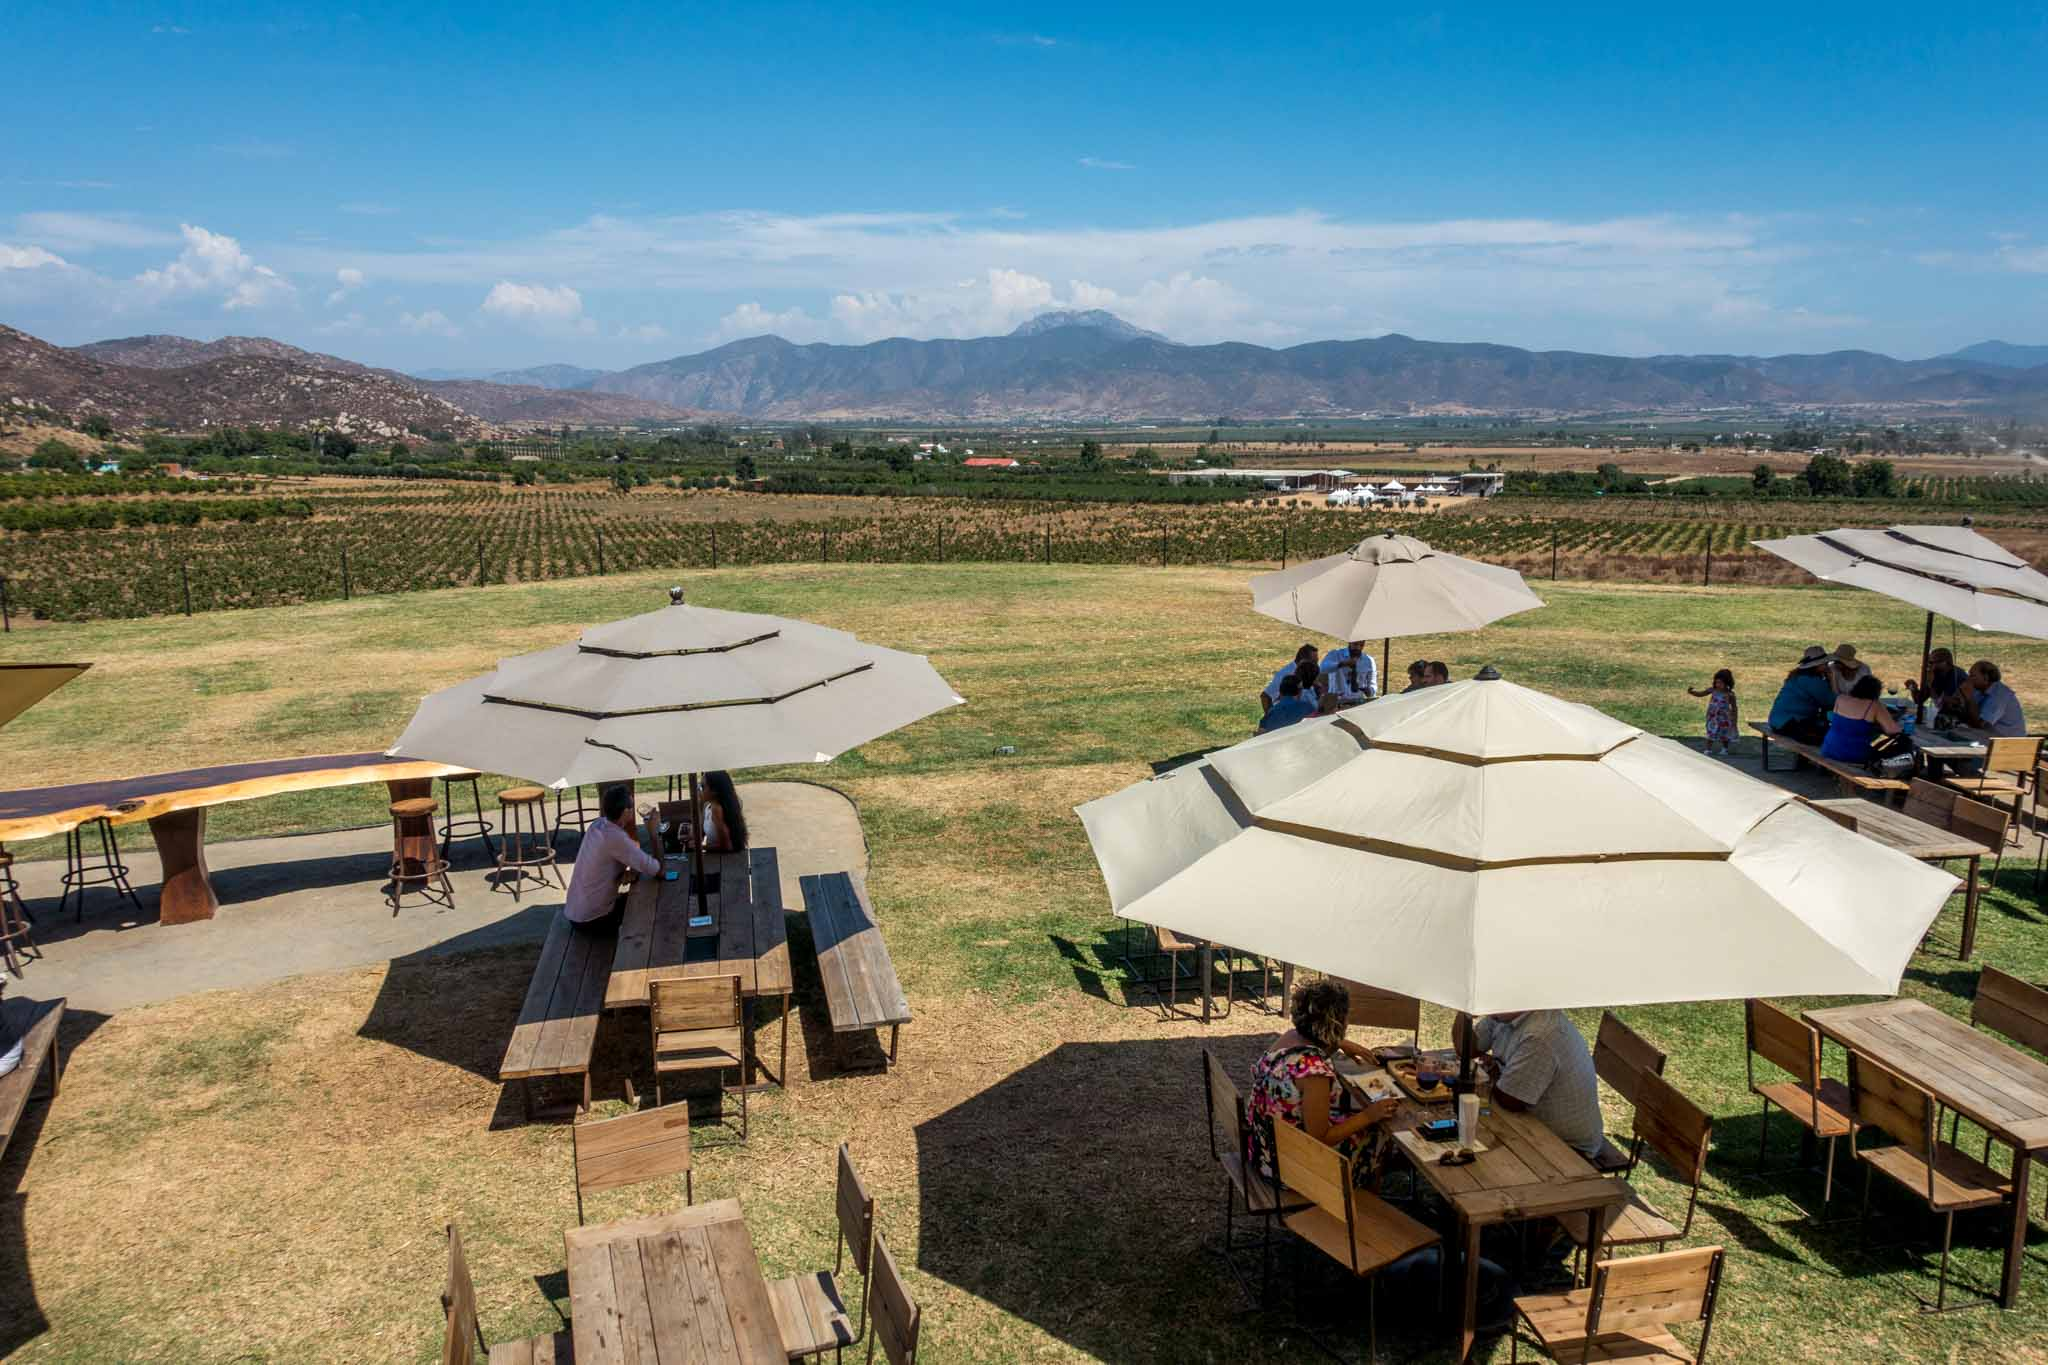 Tables under umbrellas in the Decantos Winery